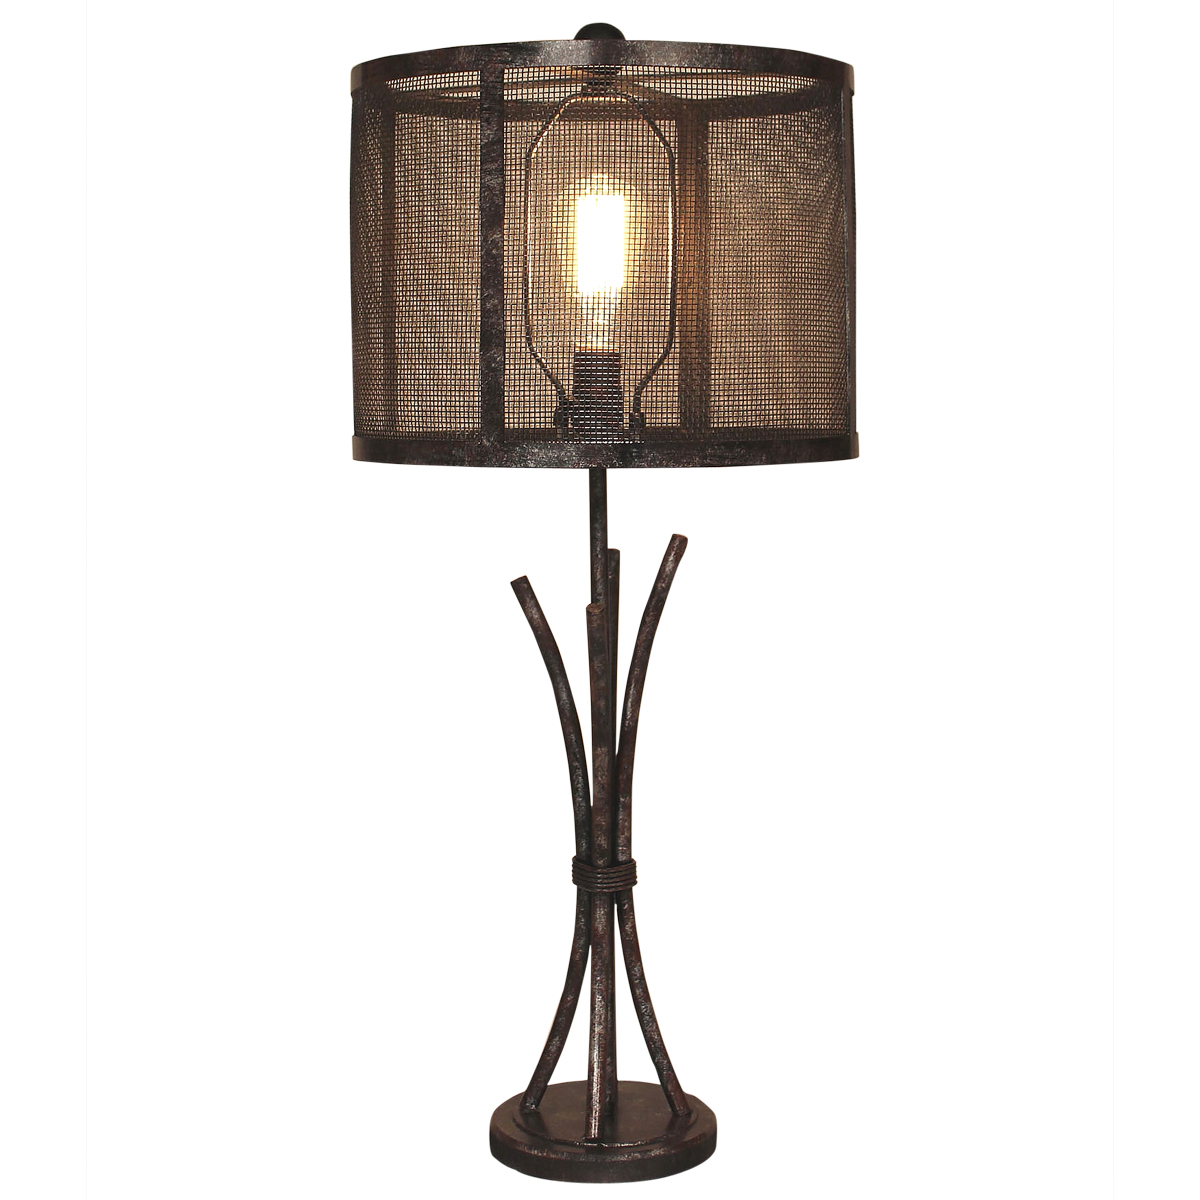 Antiqued Iron Bundle Table Lamp with Metal Mesh Shade